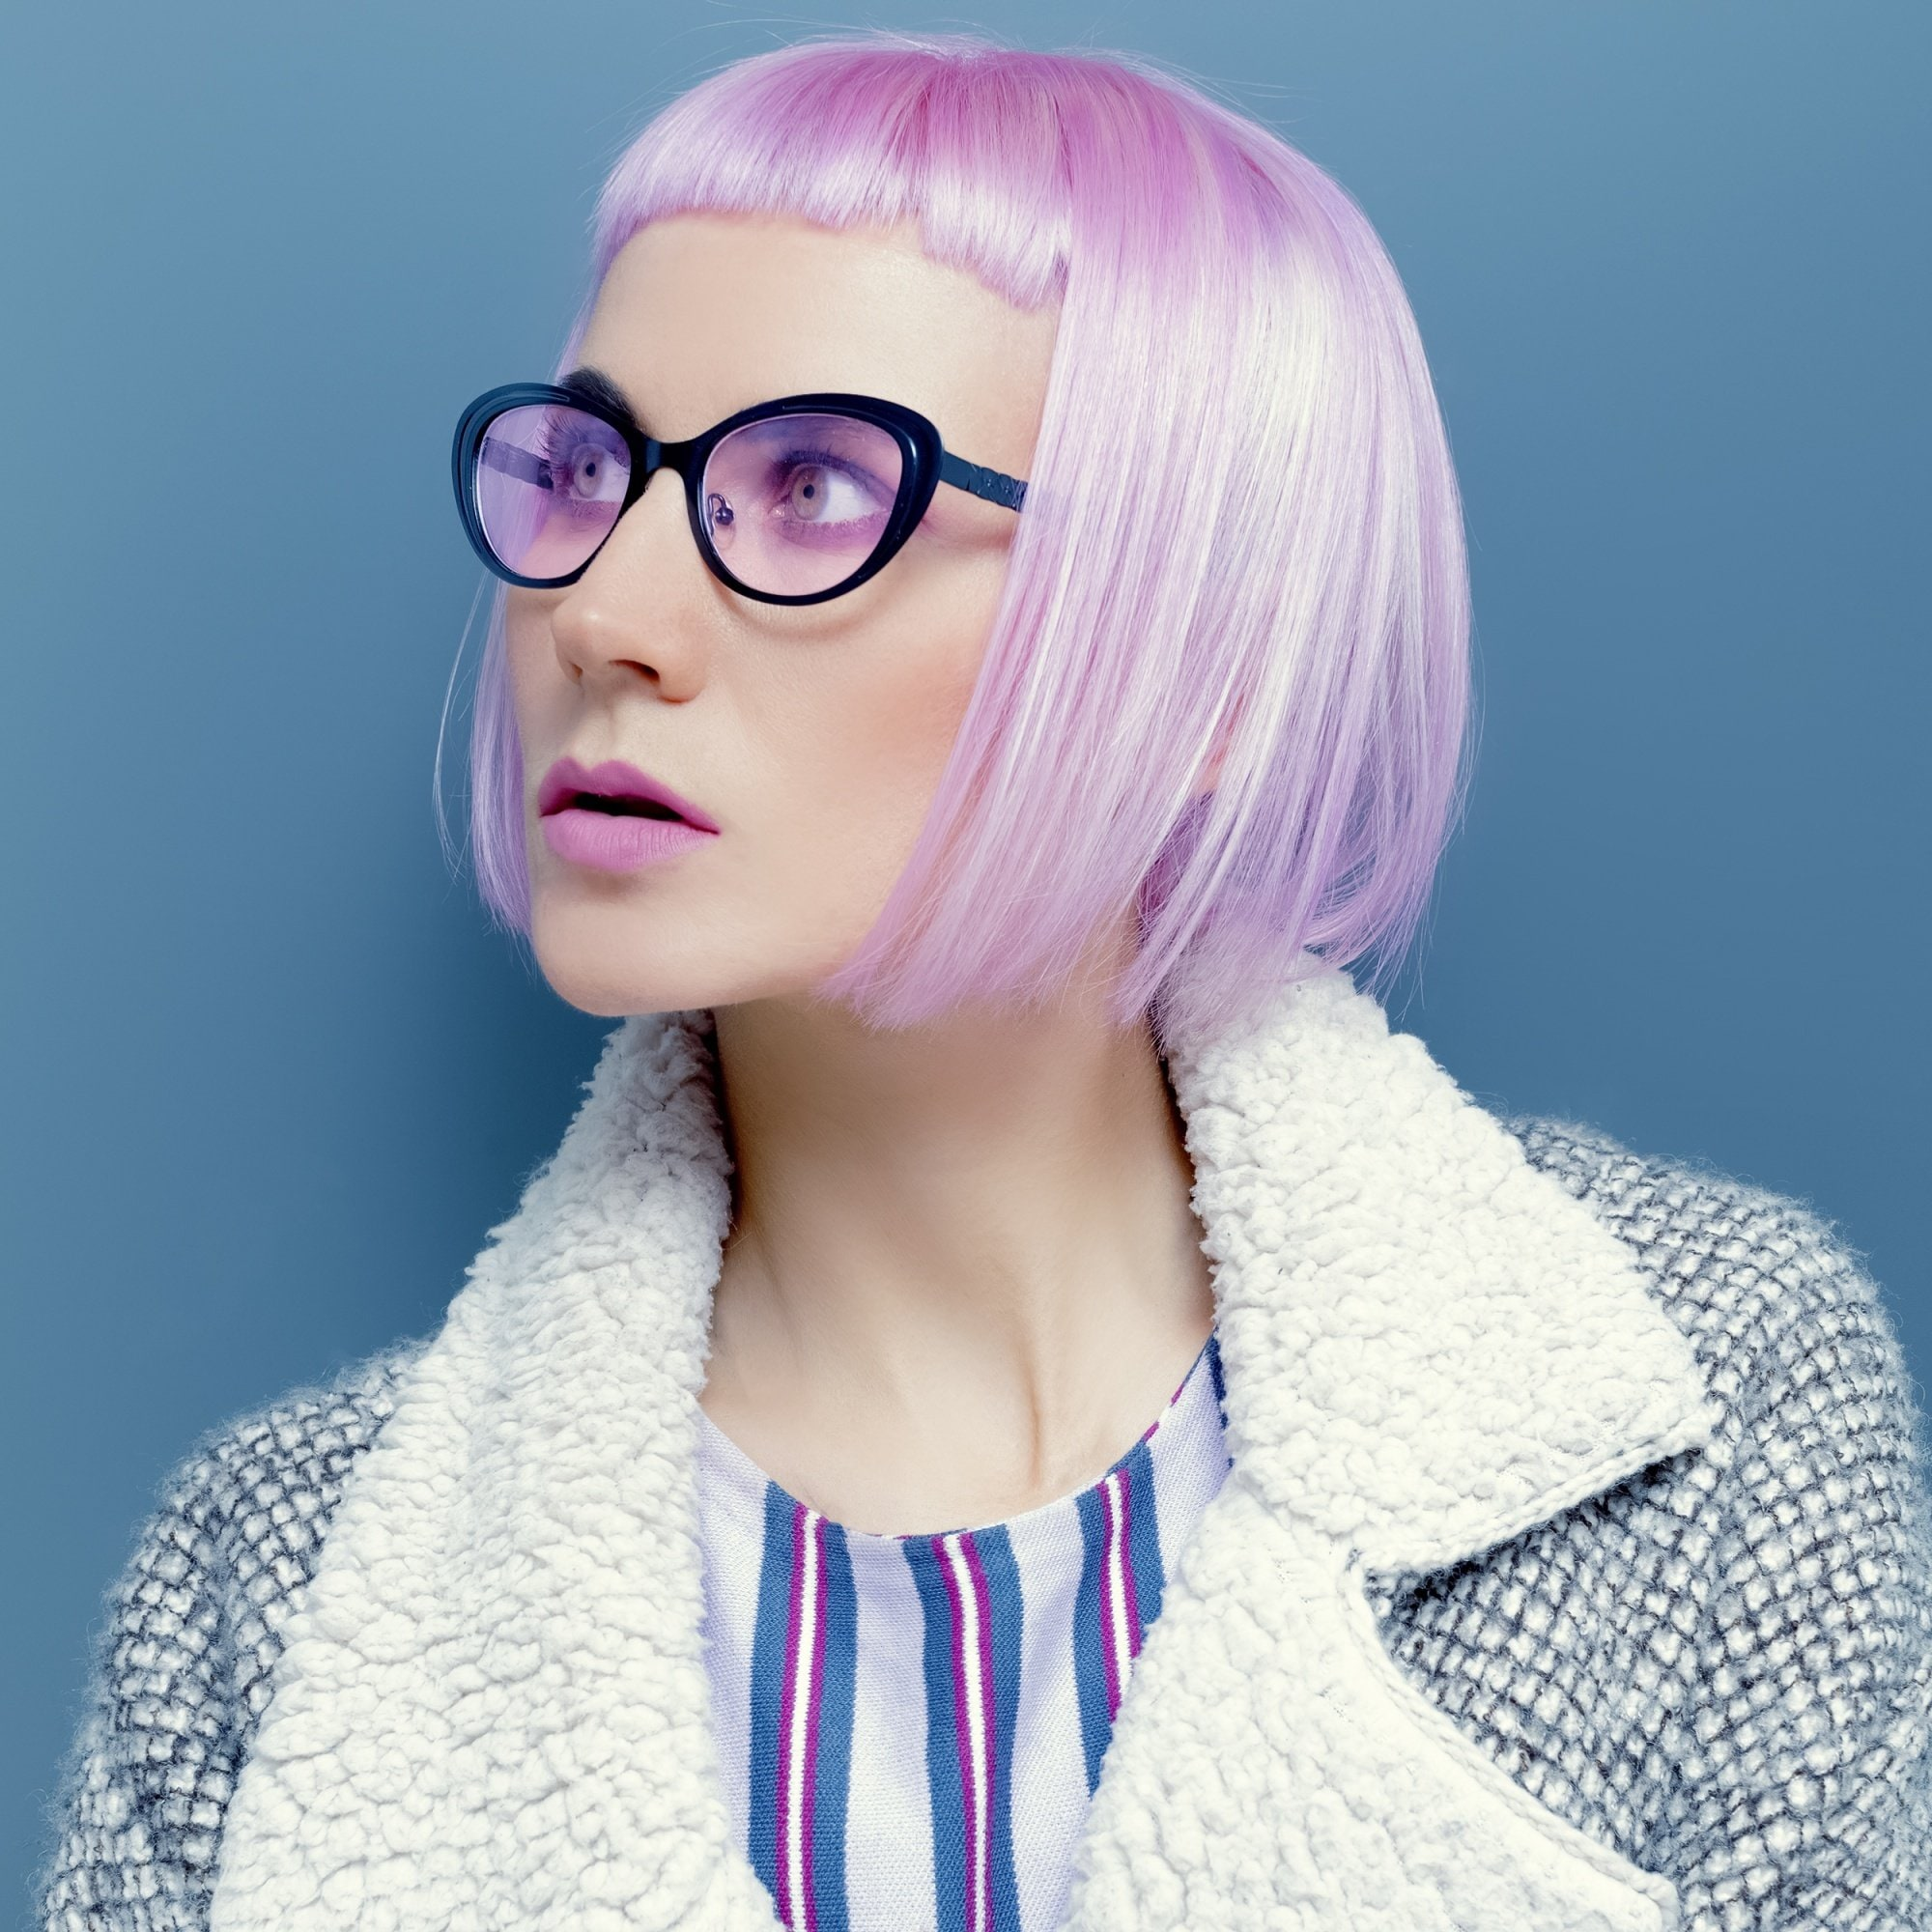 Baby bangs for short hair: Closeup shot of a woman with short pink hair with baby bangs wearing eyeglasses